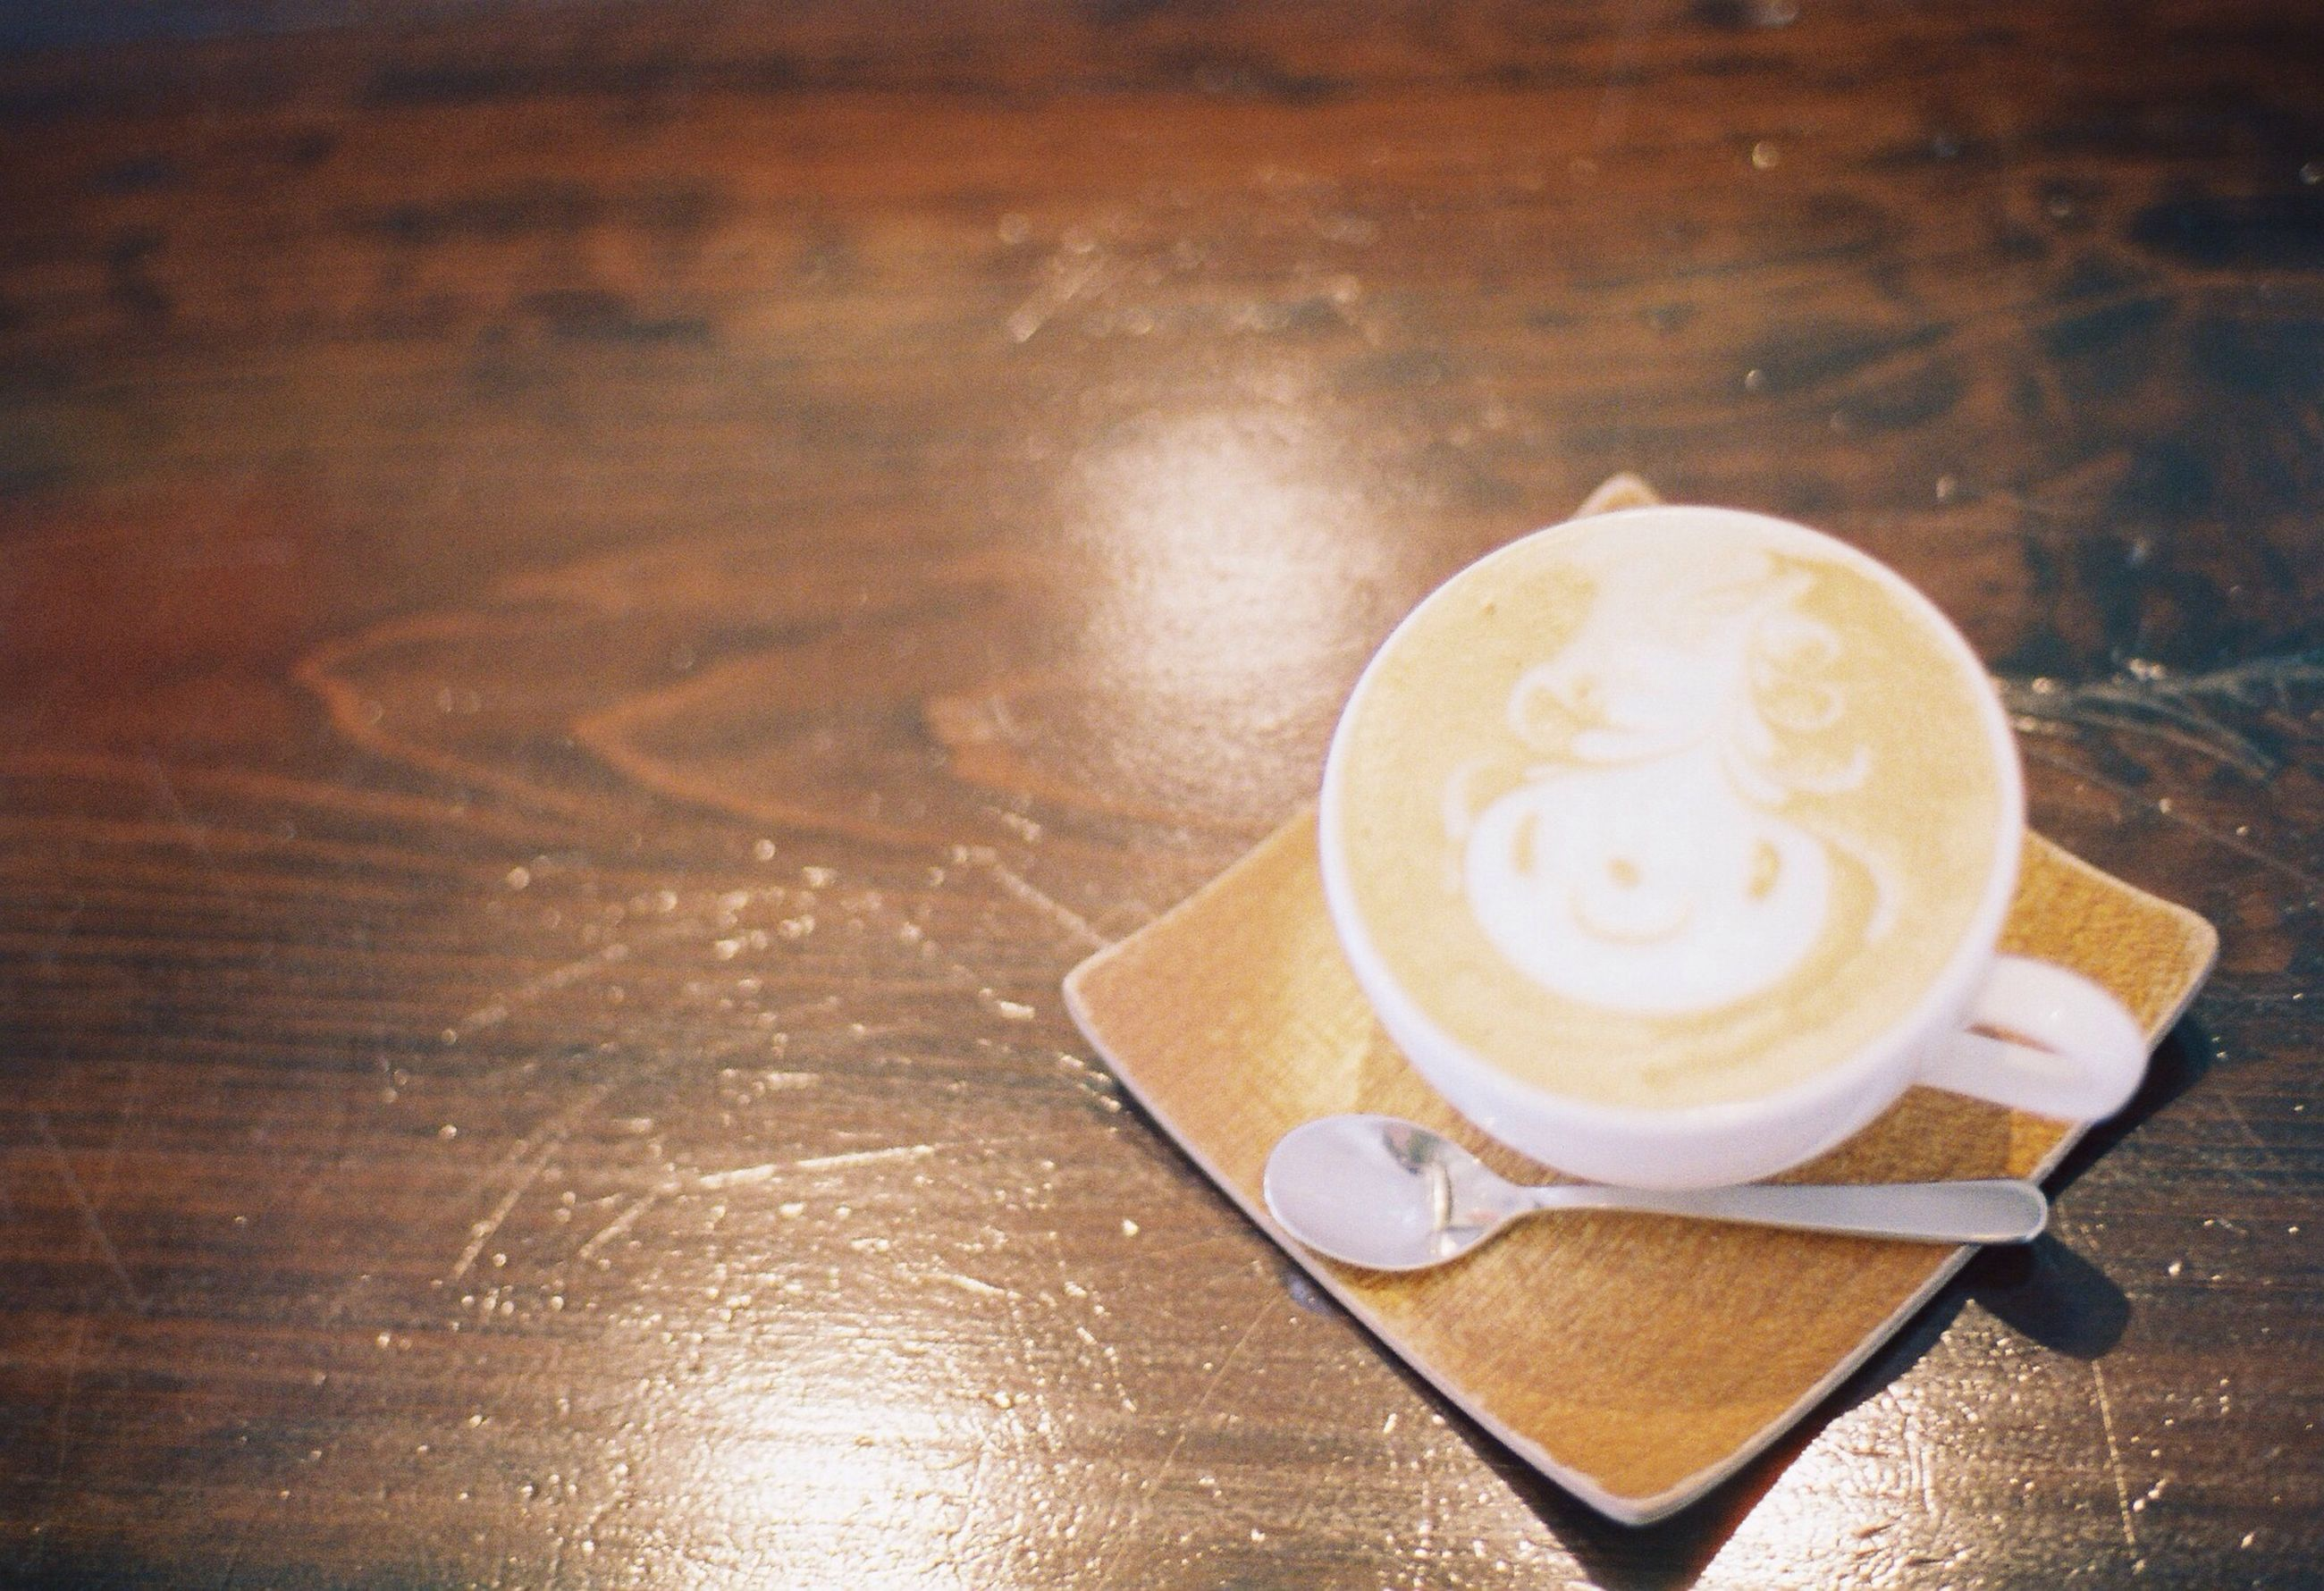 drink, coffee cup, food and drink, refreshment, coffee - drink, saucer, table, coffee, frothy drink, indoors, freshness, cappuccino, cup, still life, spoon, froth art, high angle view, beverage, hot drink, close-up